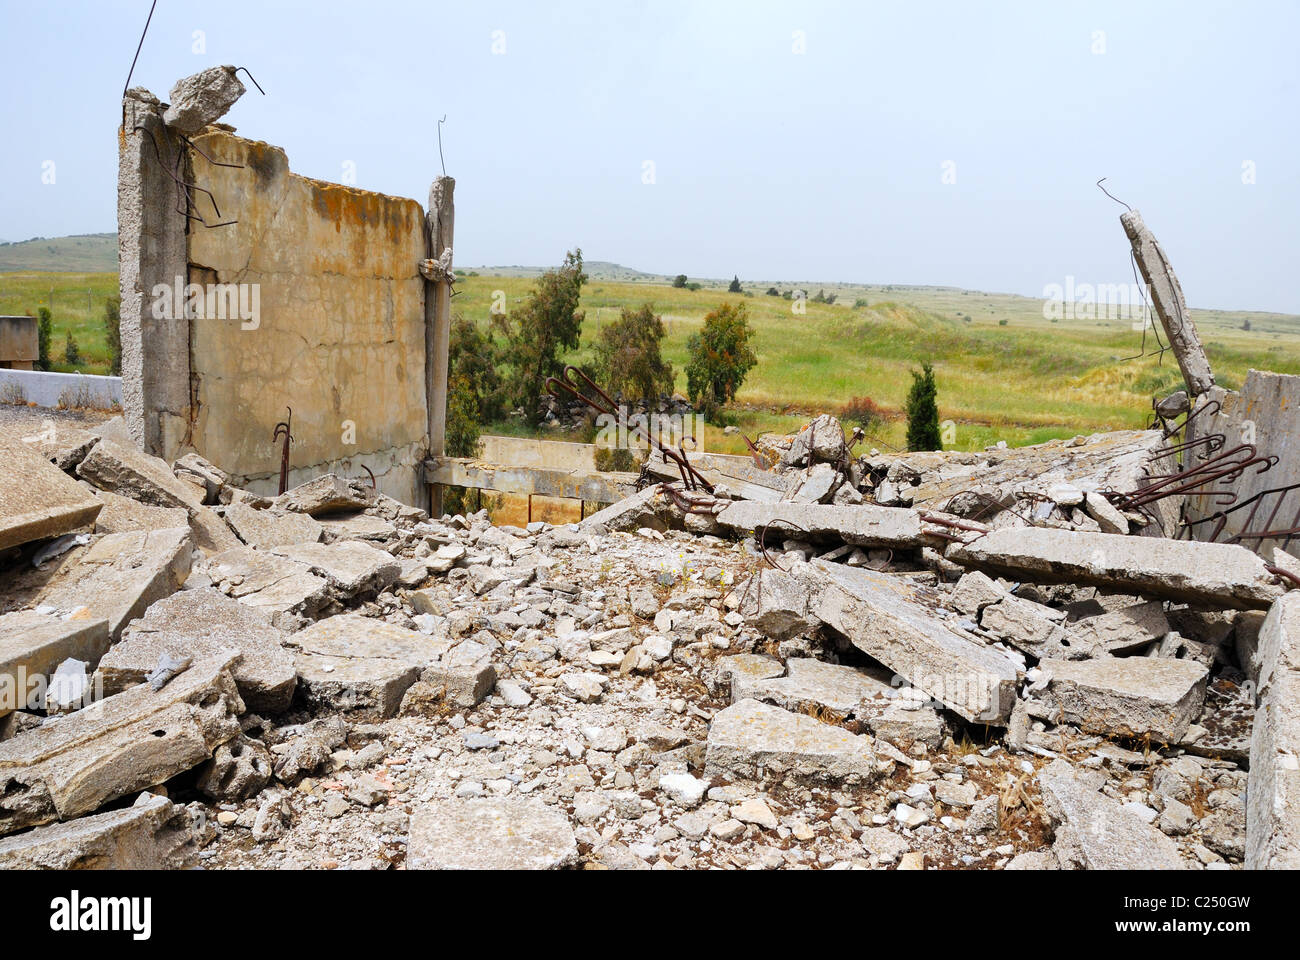 The thrown buildings in the demilitarised zone on the Syrian-Israeli border - Stock Image